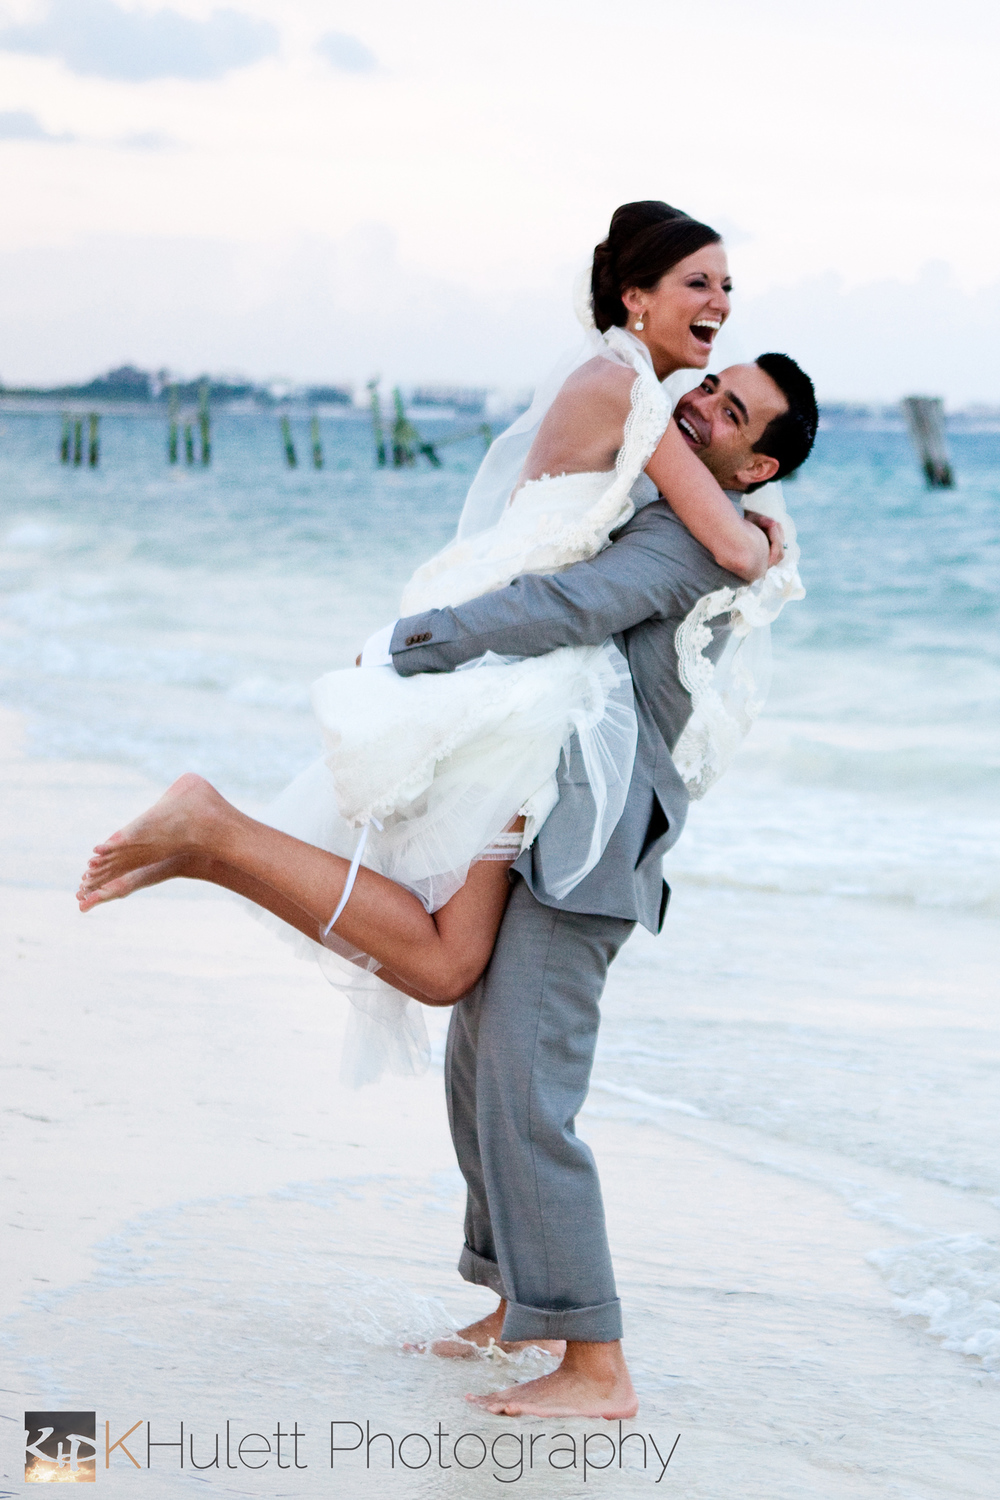 Take $200 off either of our two wedding packages anywhere in the world for 2013!  Just put down your deposit by December 31st!!